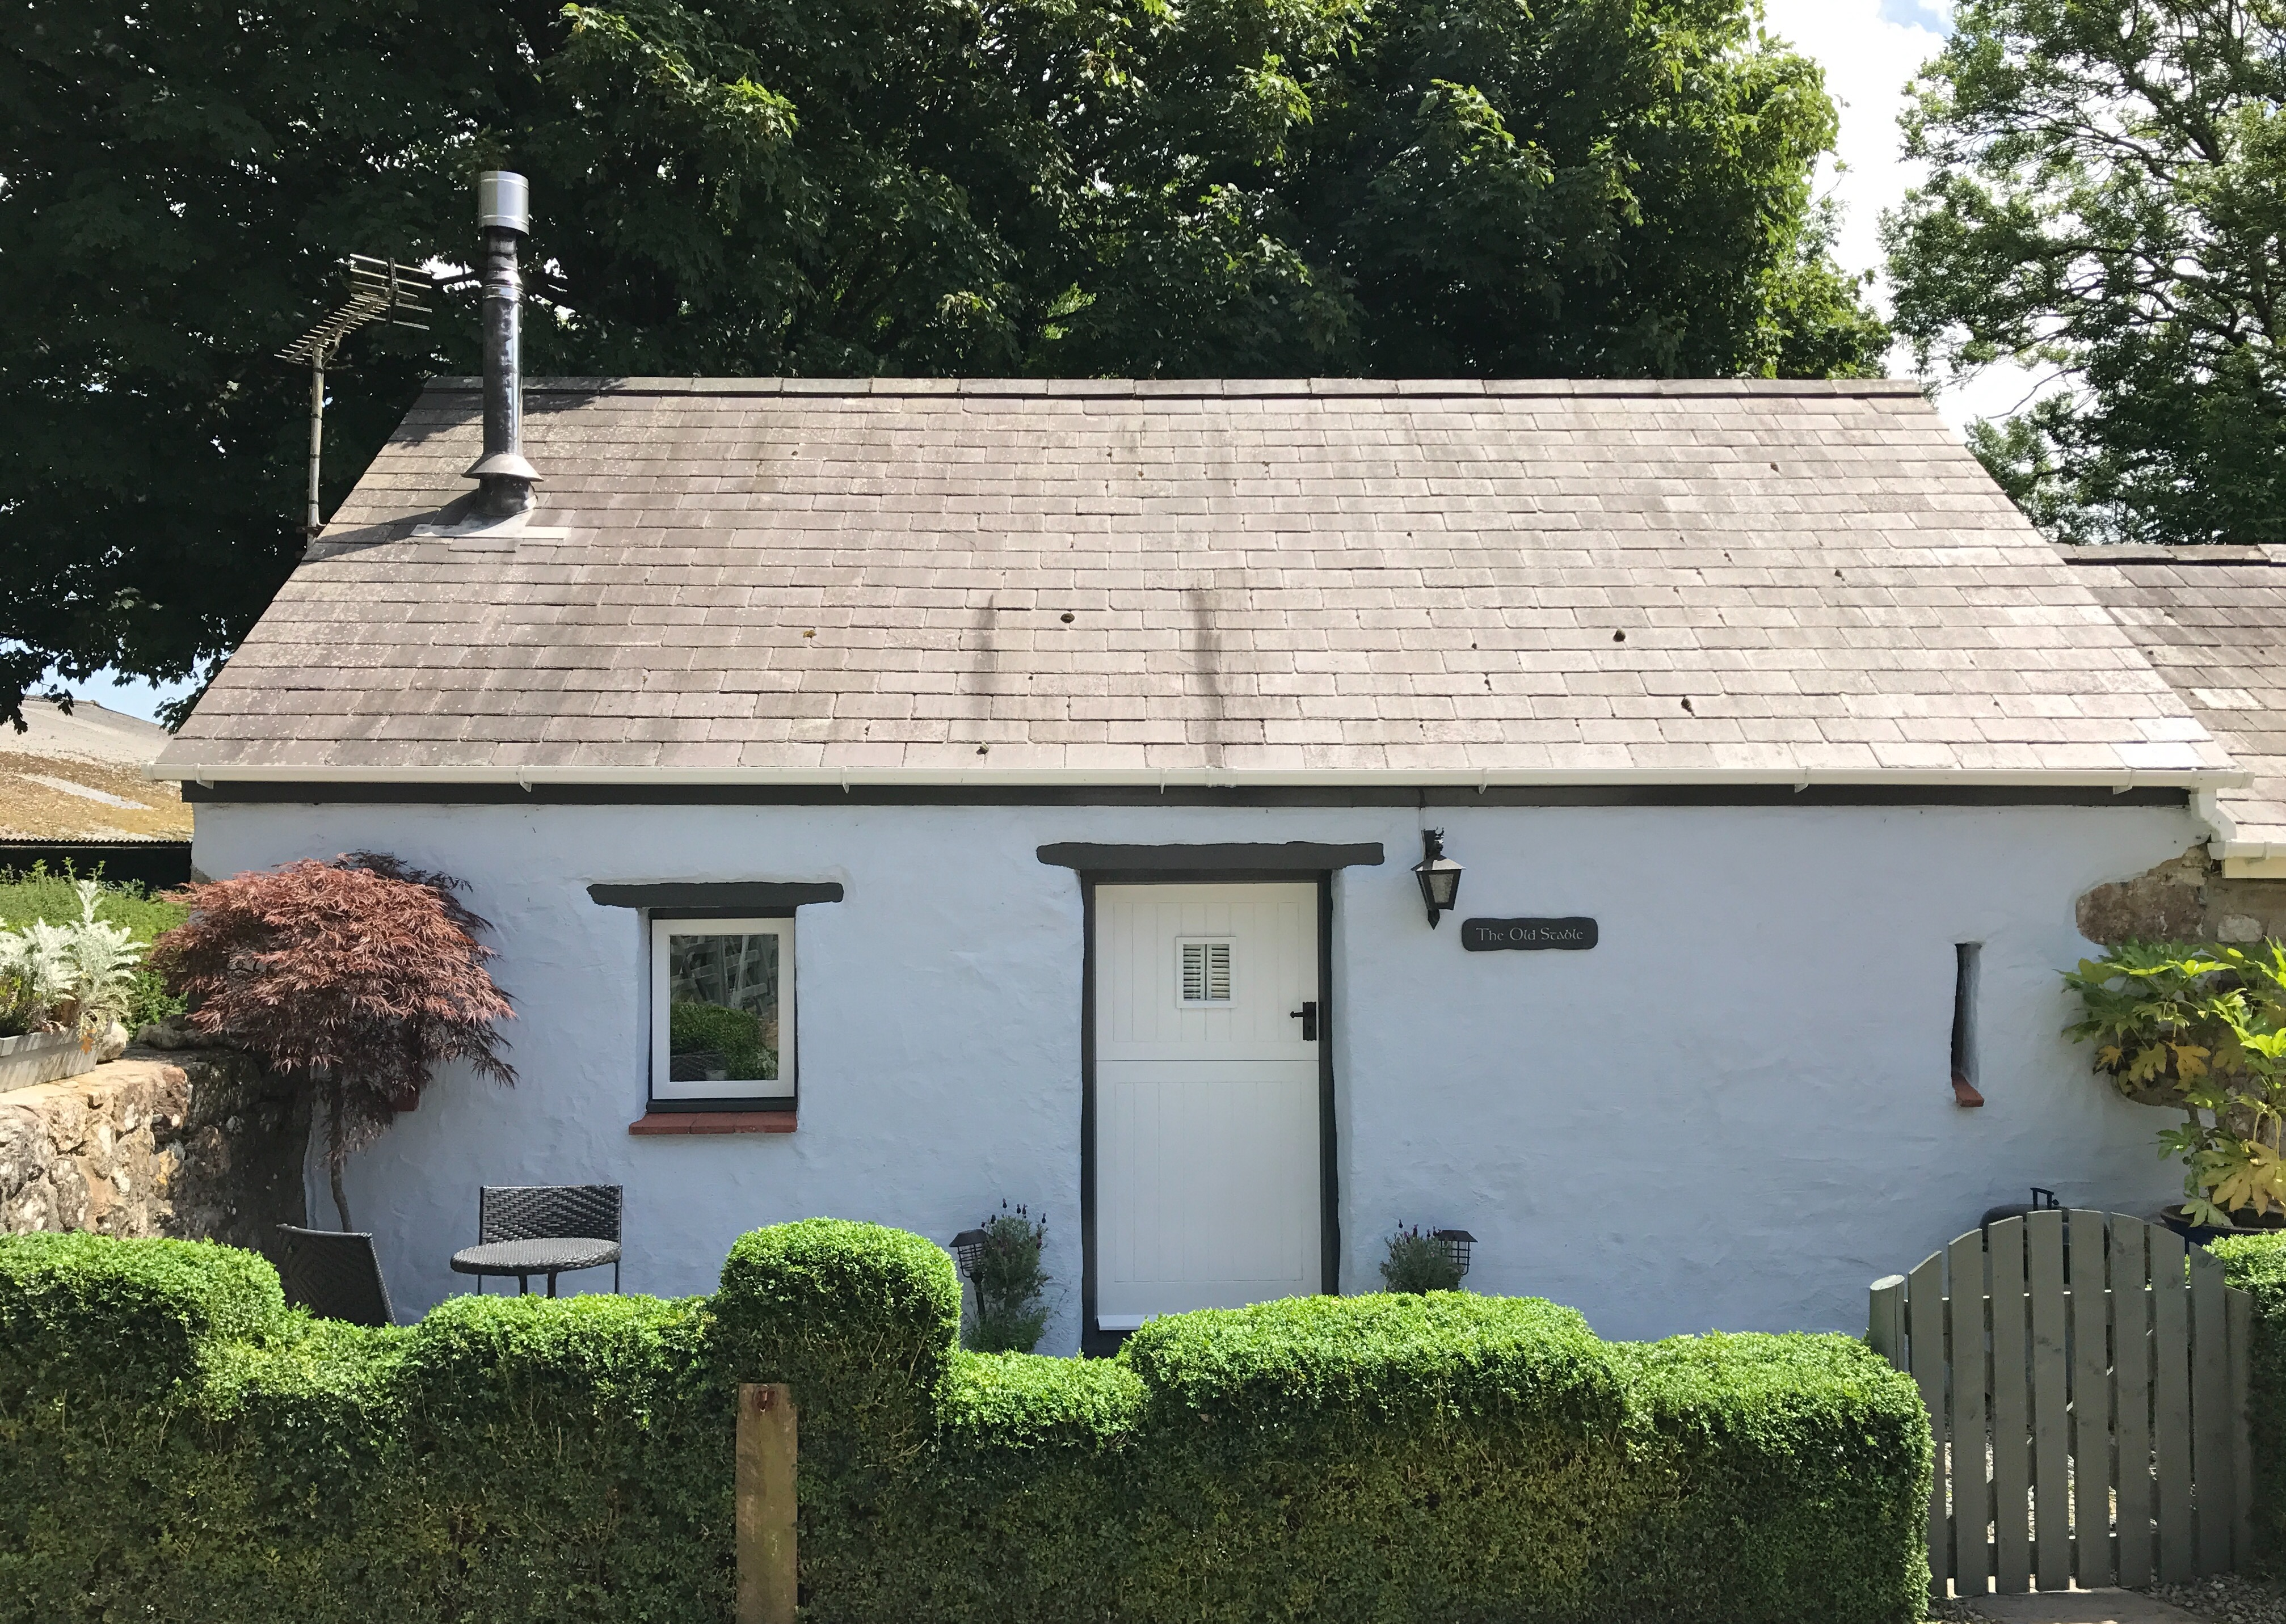 The Old Stable - Holiday Cottages in Pembrokeshire